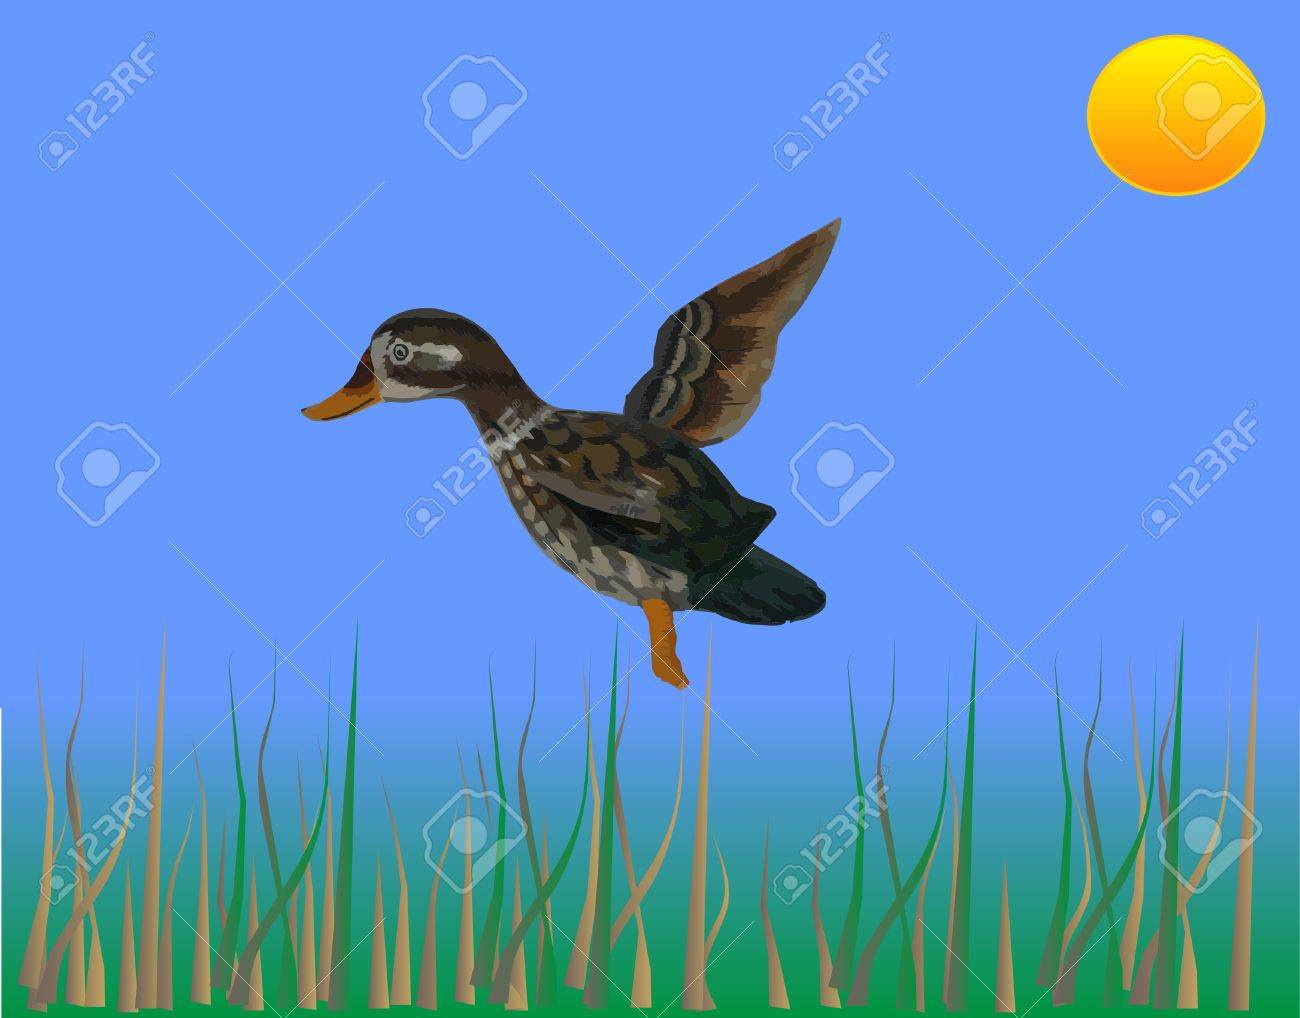 Ducking coming in for a landing over bull rushes illustration Stock Vector - 3936168